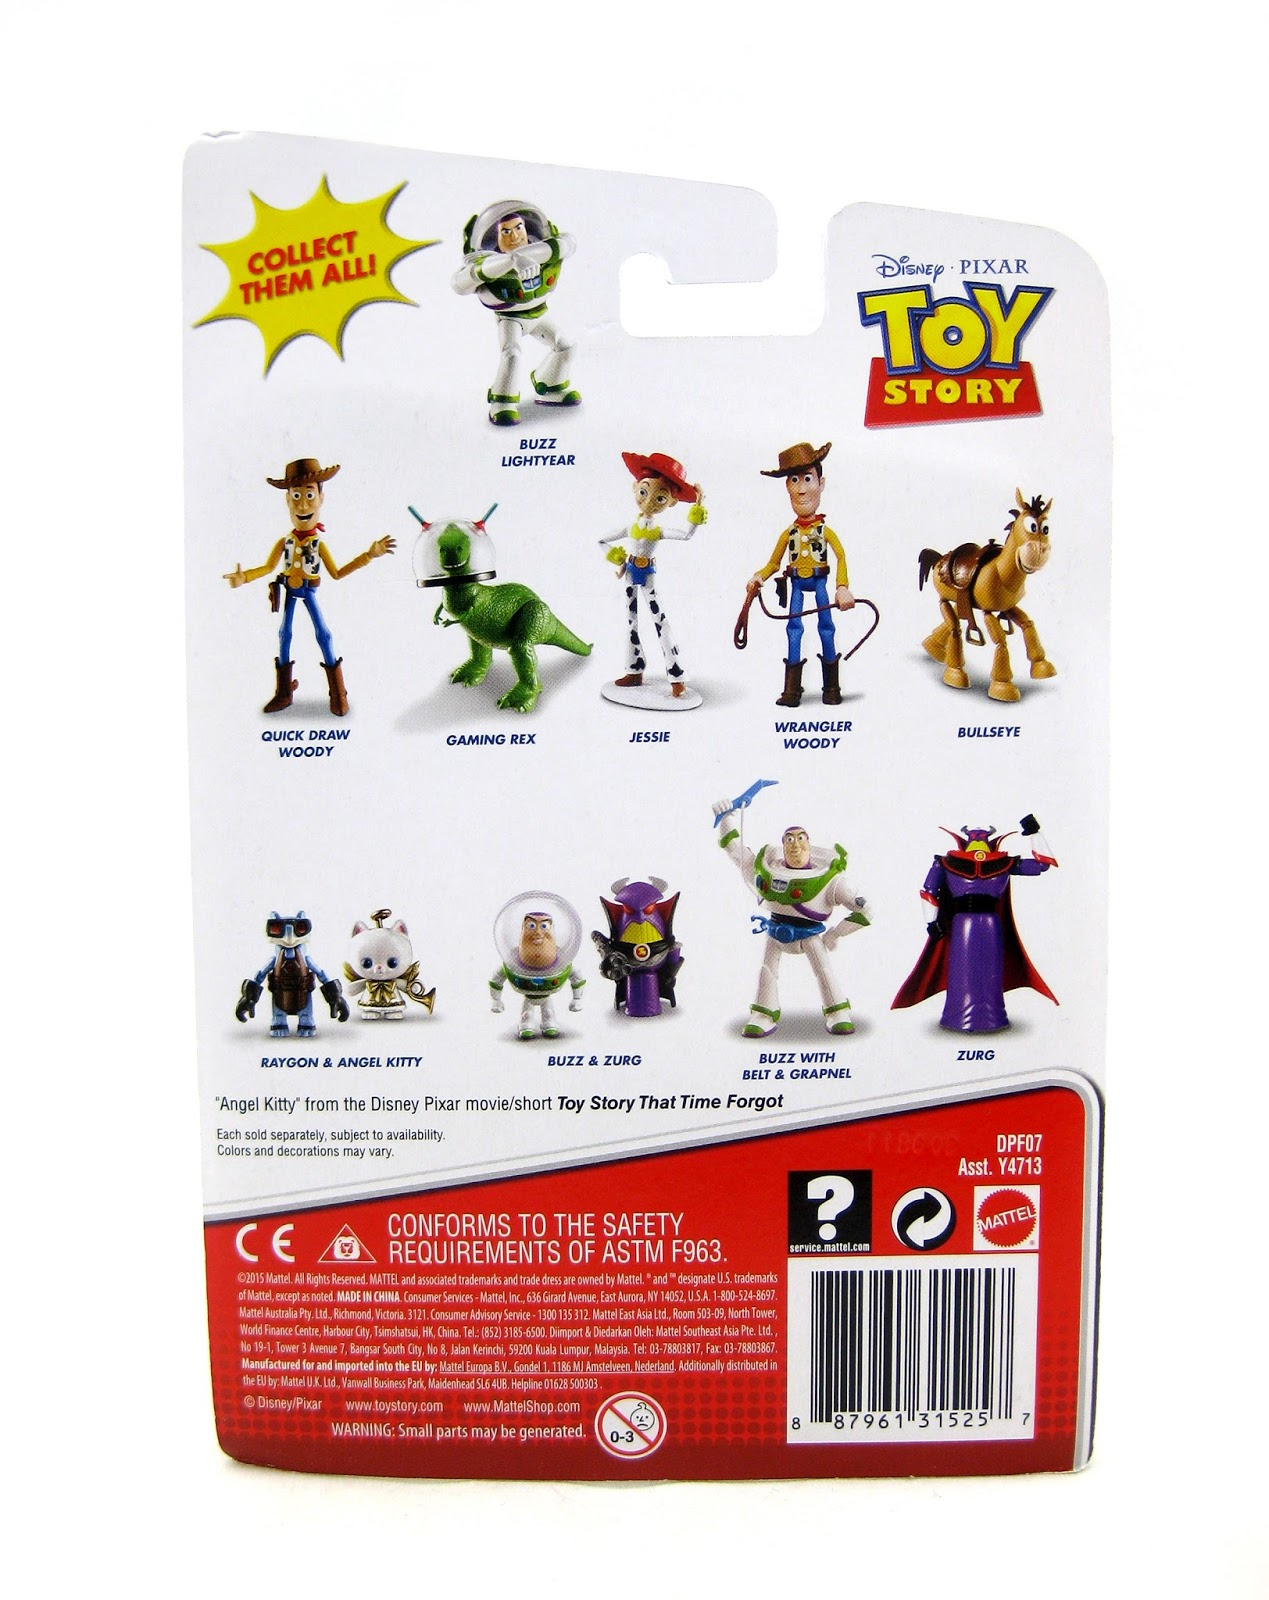 Toy story of terror 1 2 3 buzz lightyear of star command for sale - Toy Story Toons Small Fry Buzz And Zurg Figures